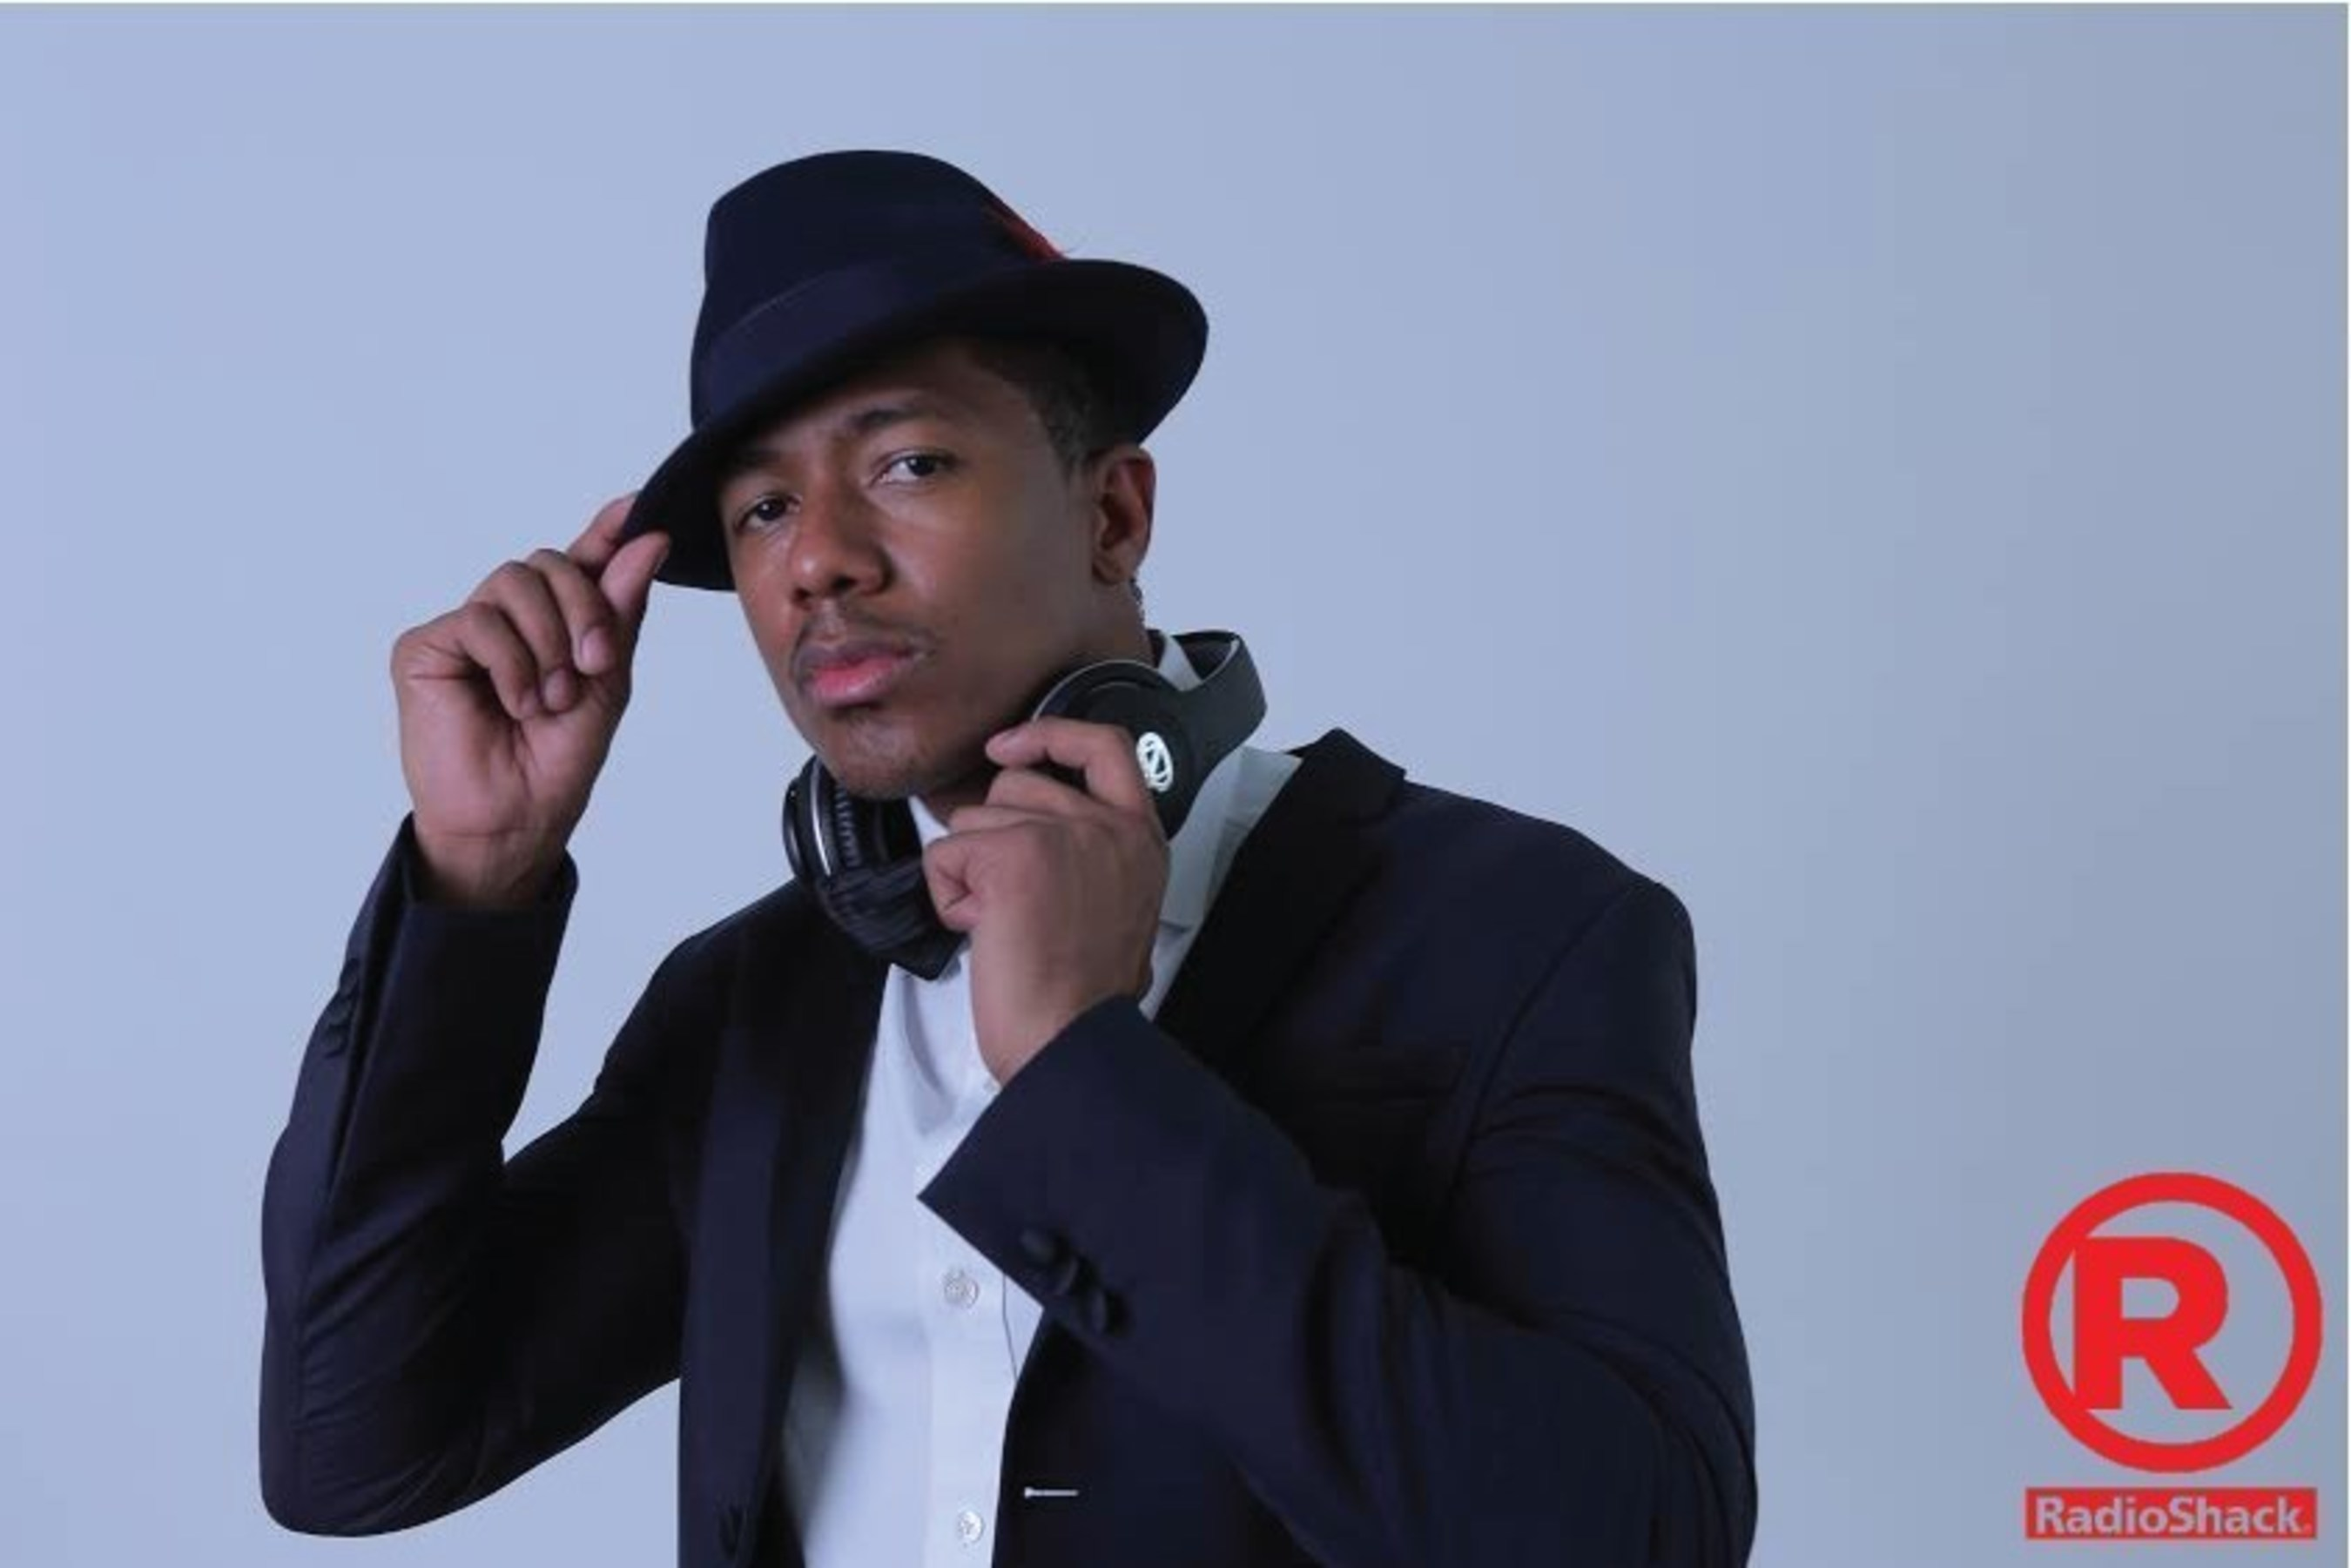 Nick Cannon joins RadioShack as Chief Creative Officer